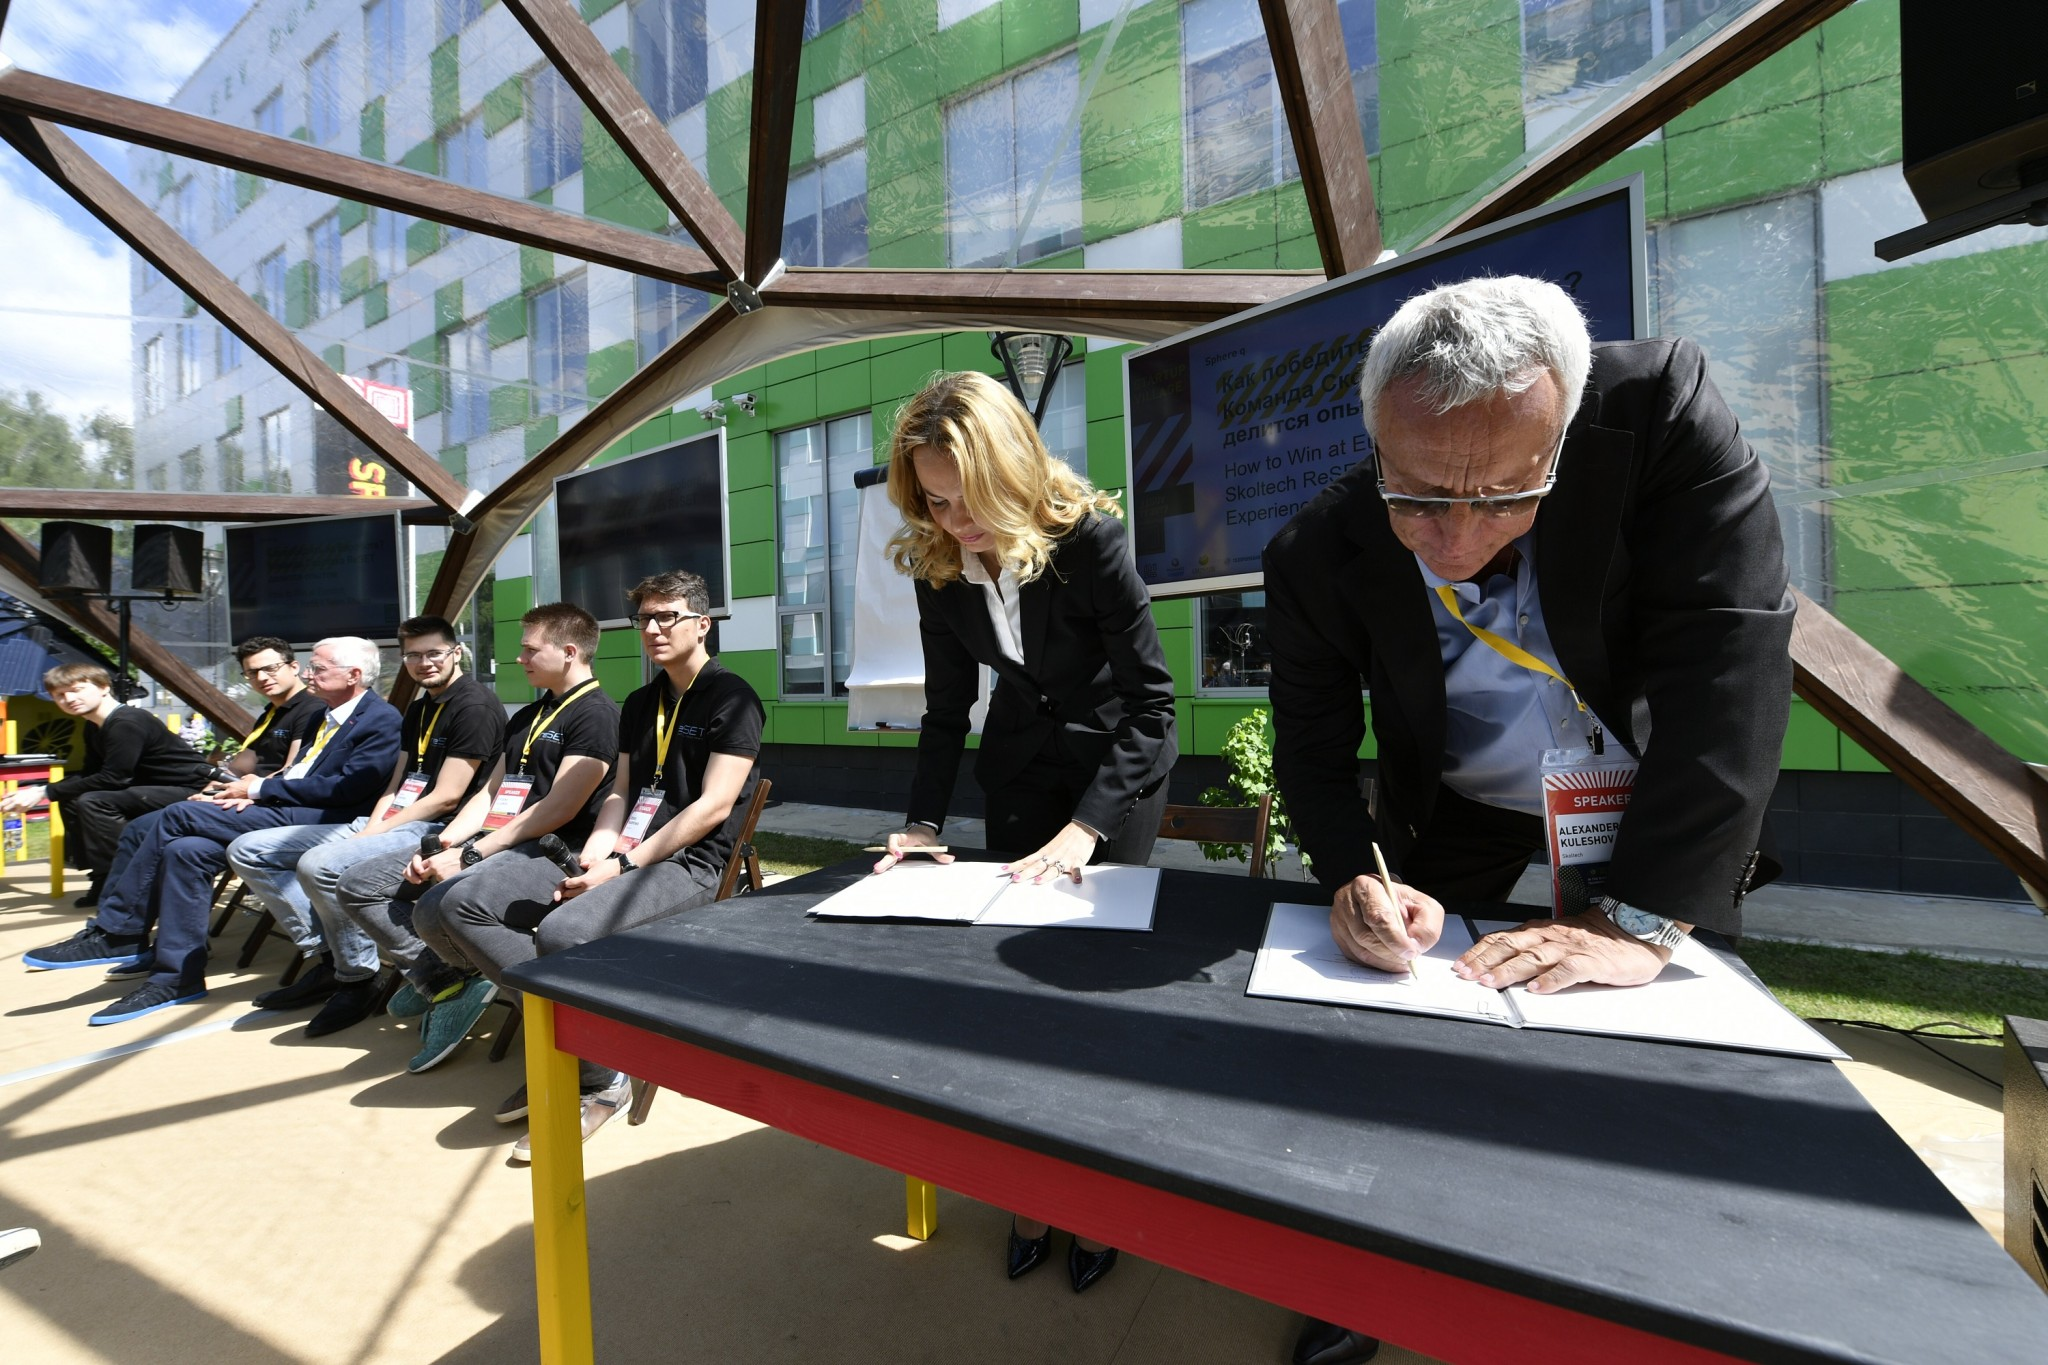 Skoltech President Kuleshov and Android Technics Deputy General Director Djamilia Chaikina sign a memorandum of understanding during a panel at the Skolkovo Startup Village.